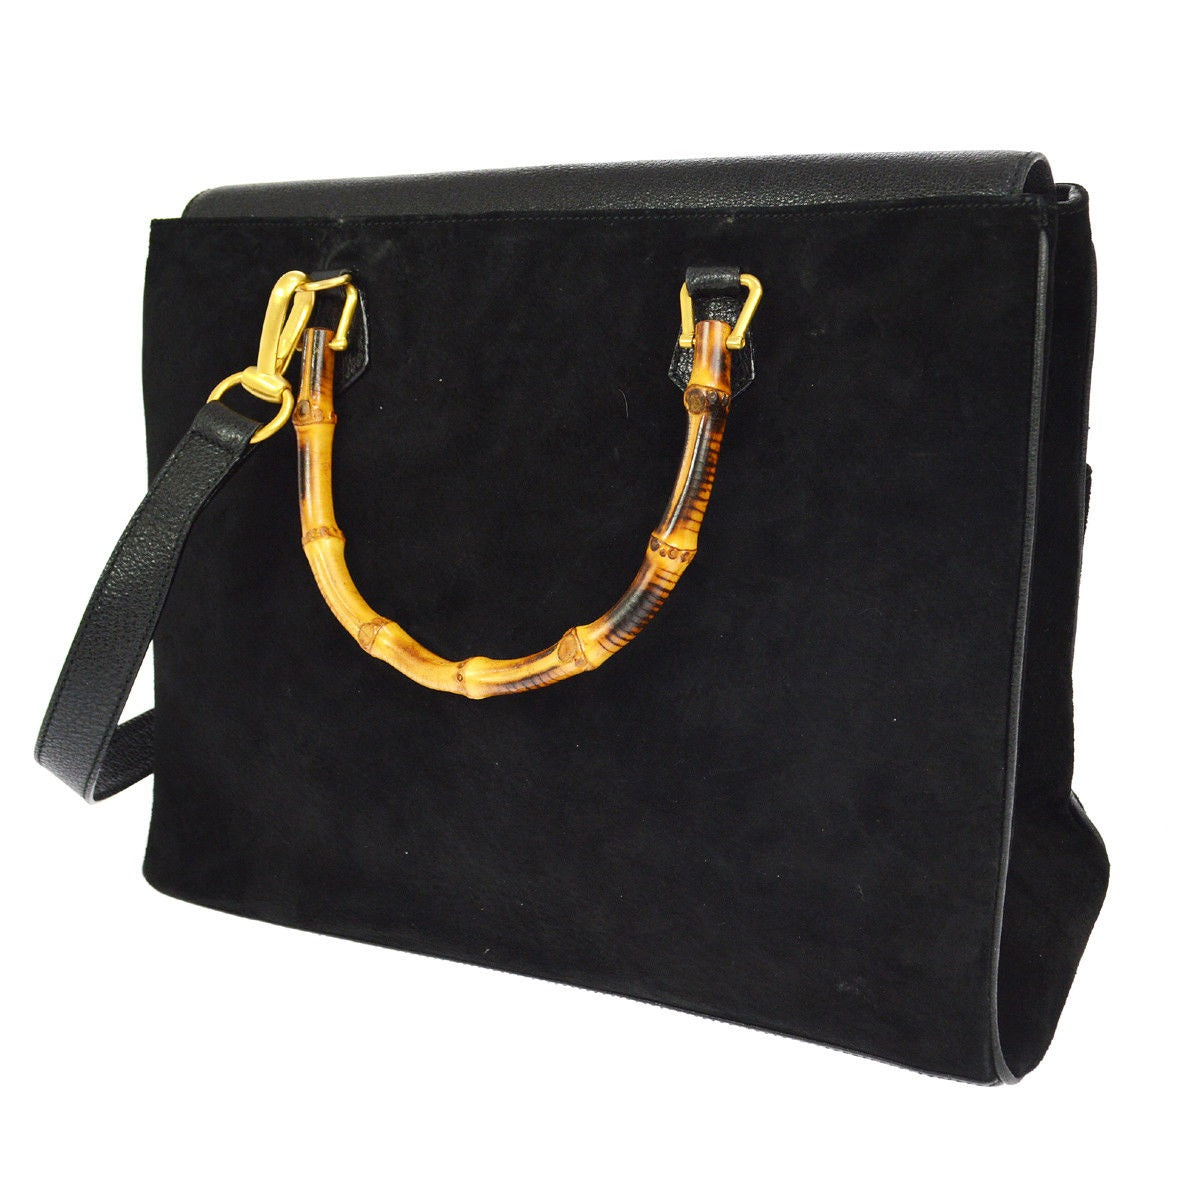 5b823957d74 ... Gucci Bamboo Handle 2way Hand Black Suede Leather Vintage Shoulder Bag  tradesy ...